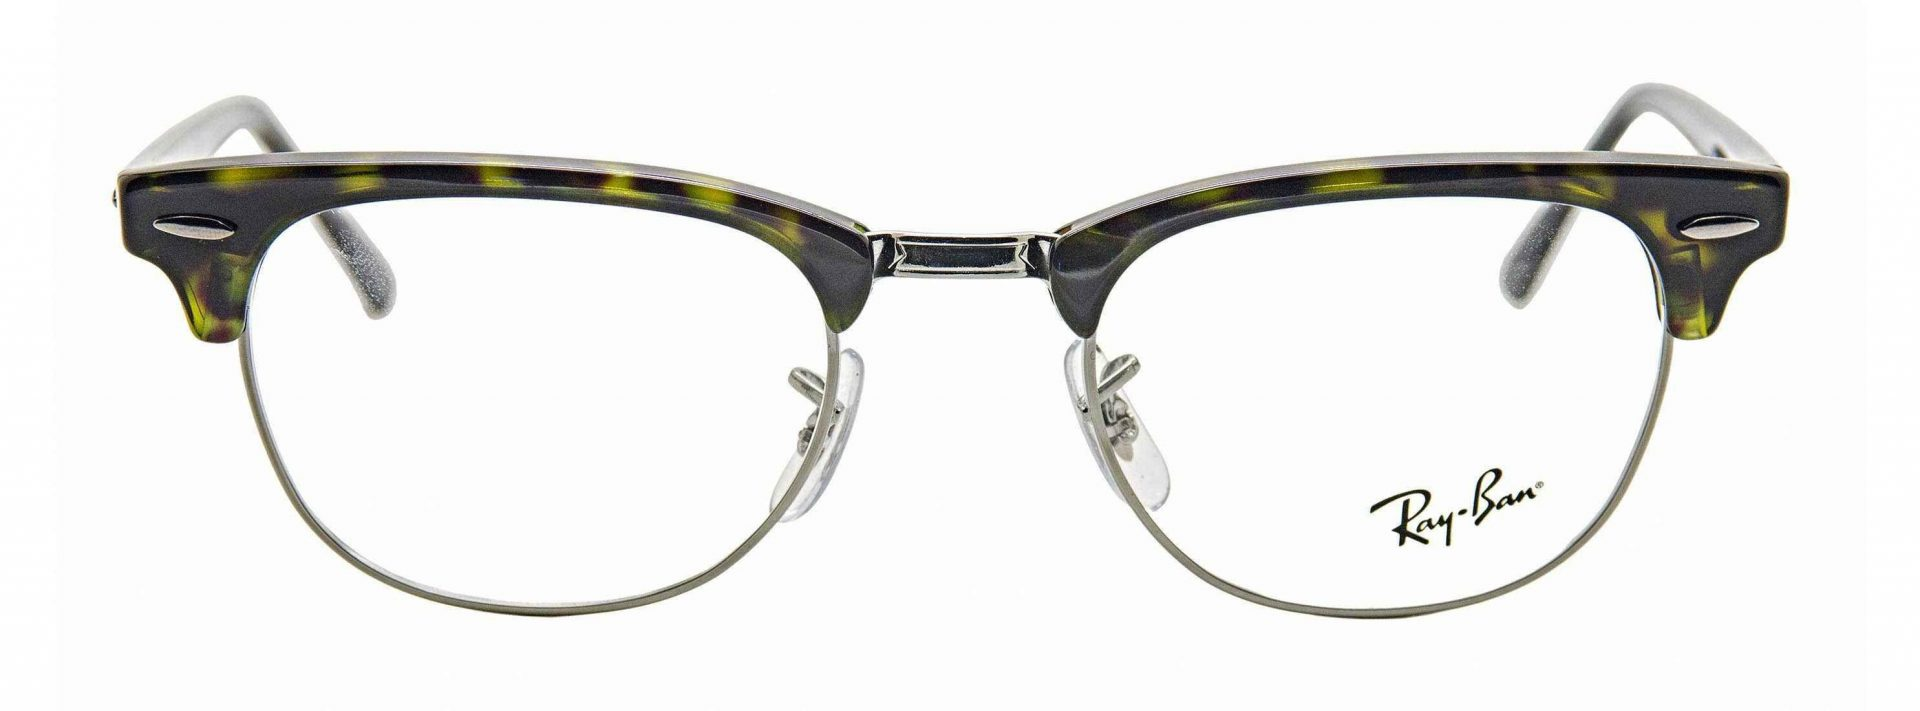 Ray-Ban spectacles 5154 01 2970x1100 1